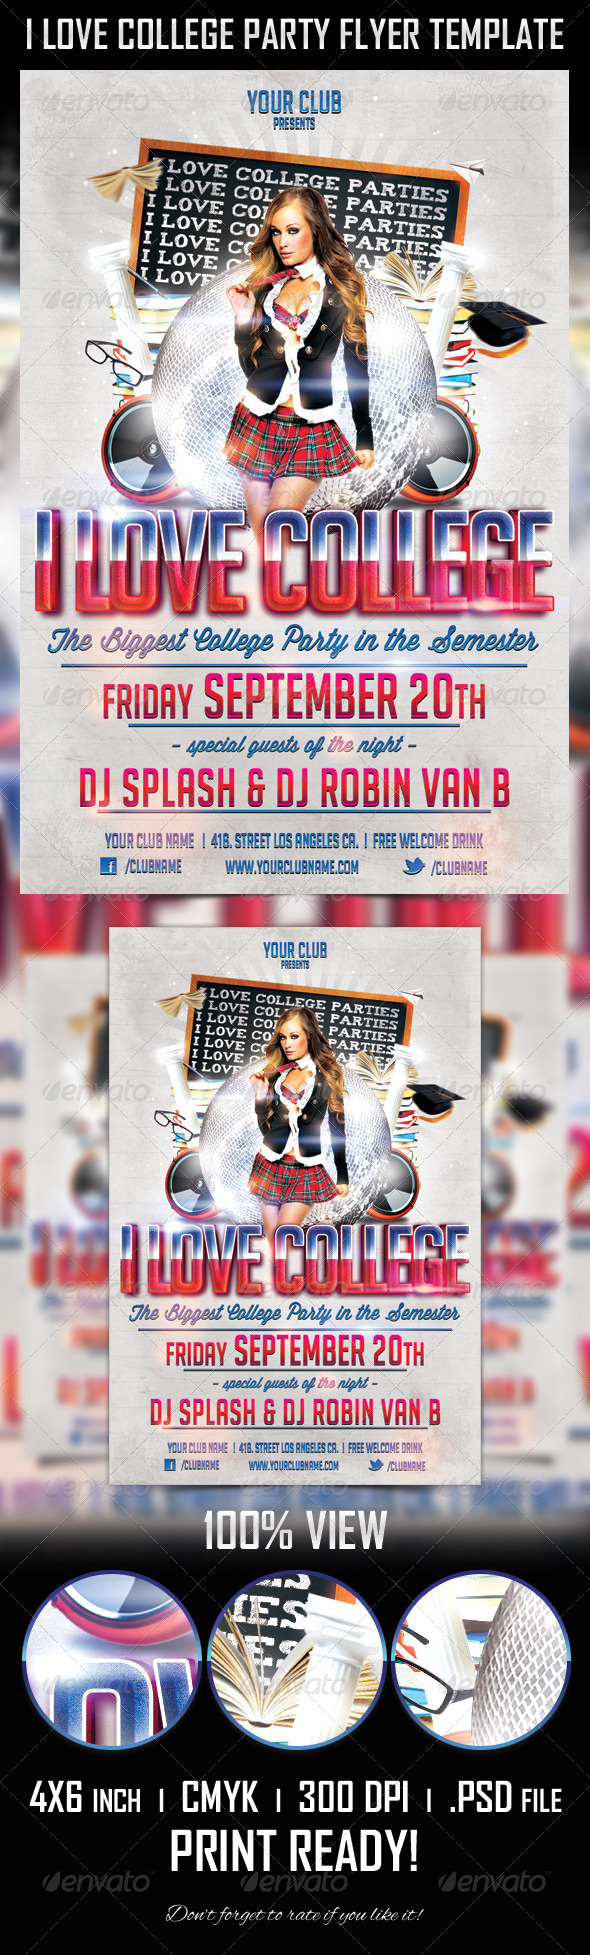 College Party Flyer Template